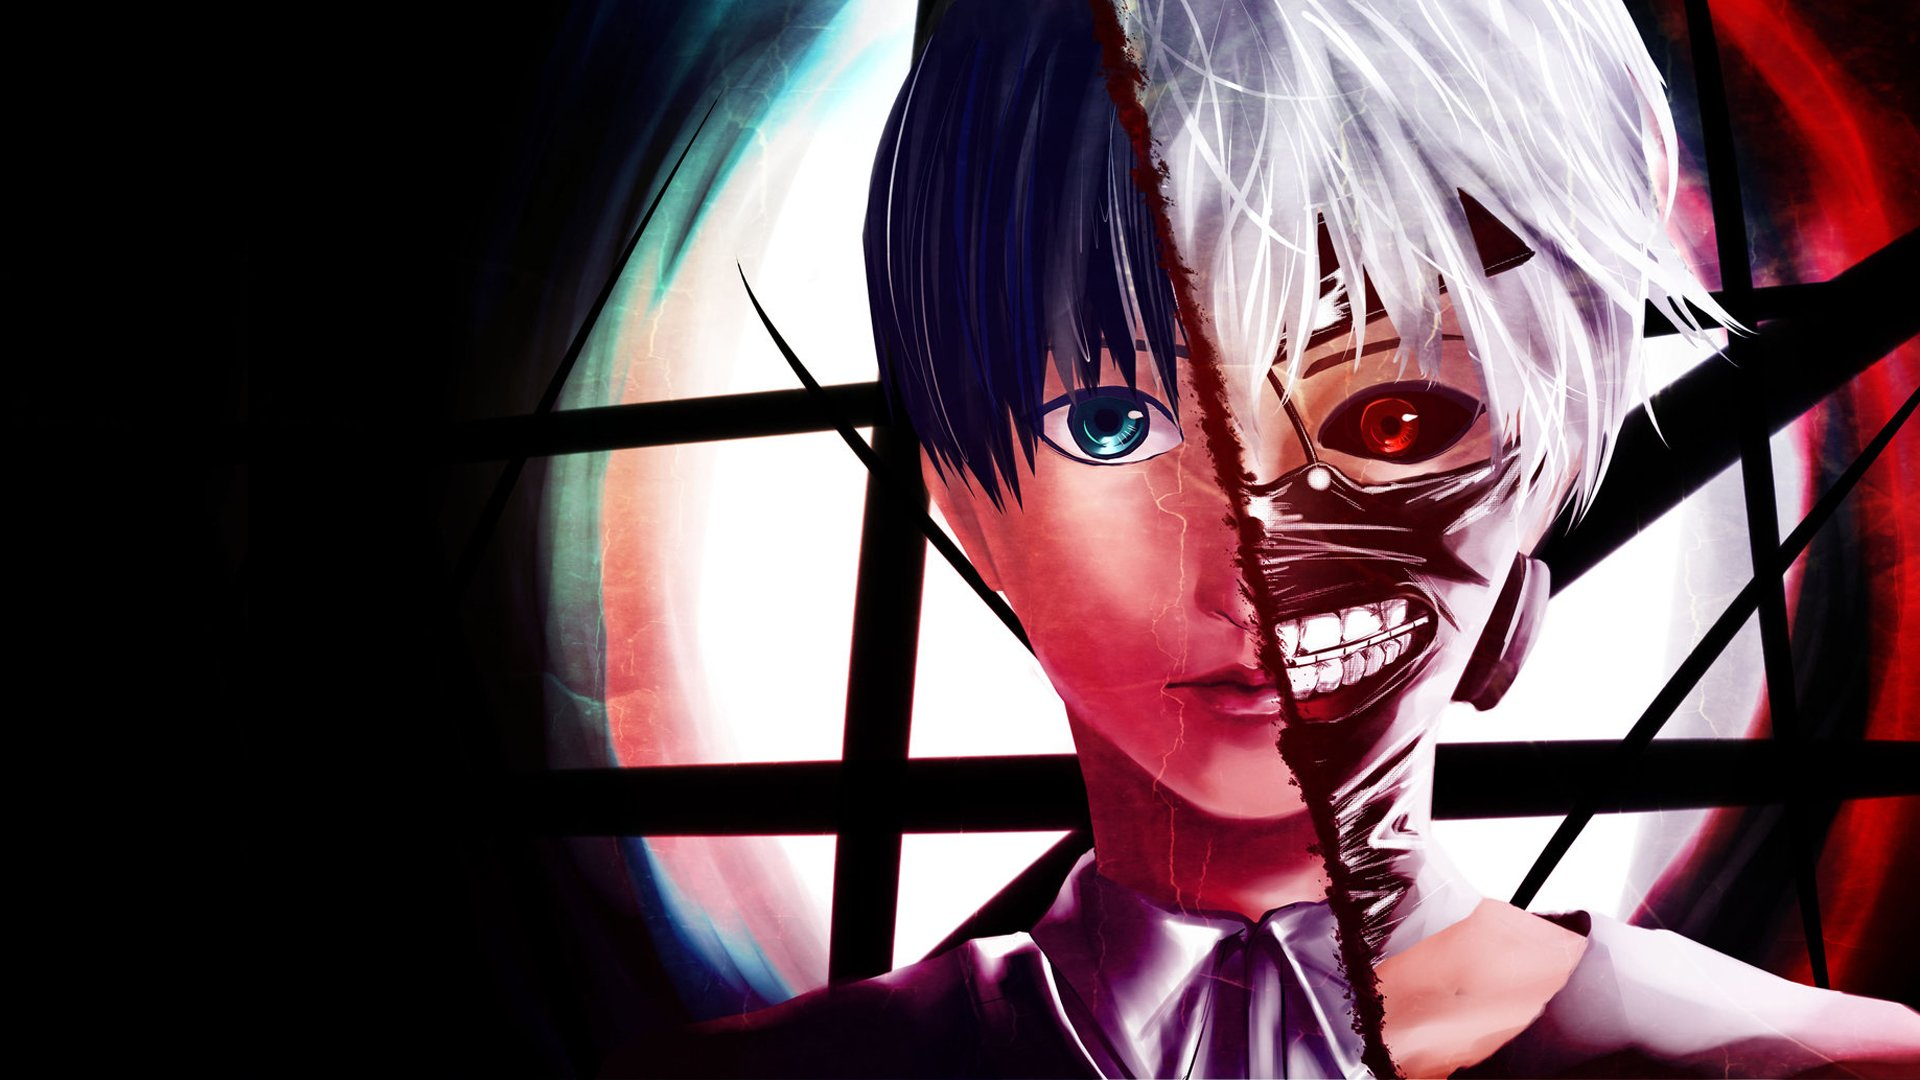 Tokyo ghoul full hd papel de parede and planos de fundo - Anime full hd download ...